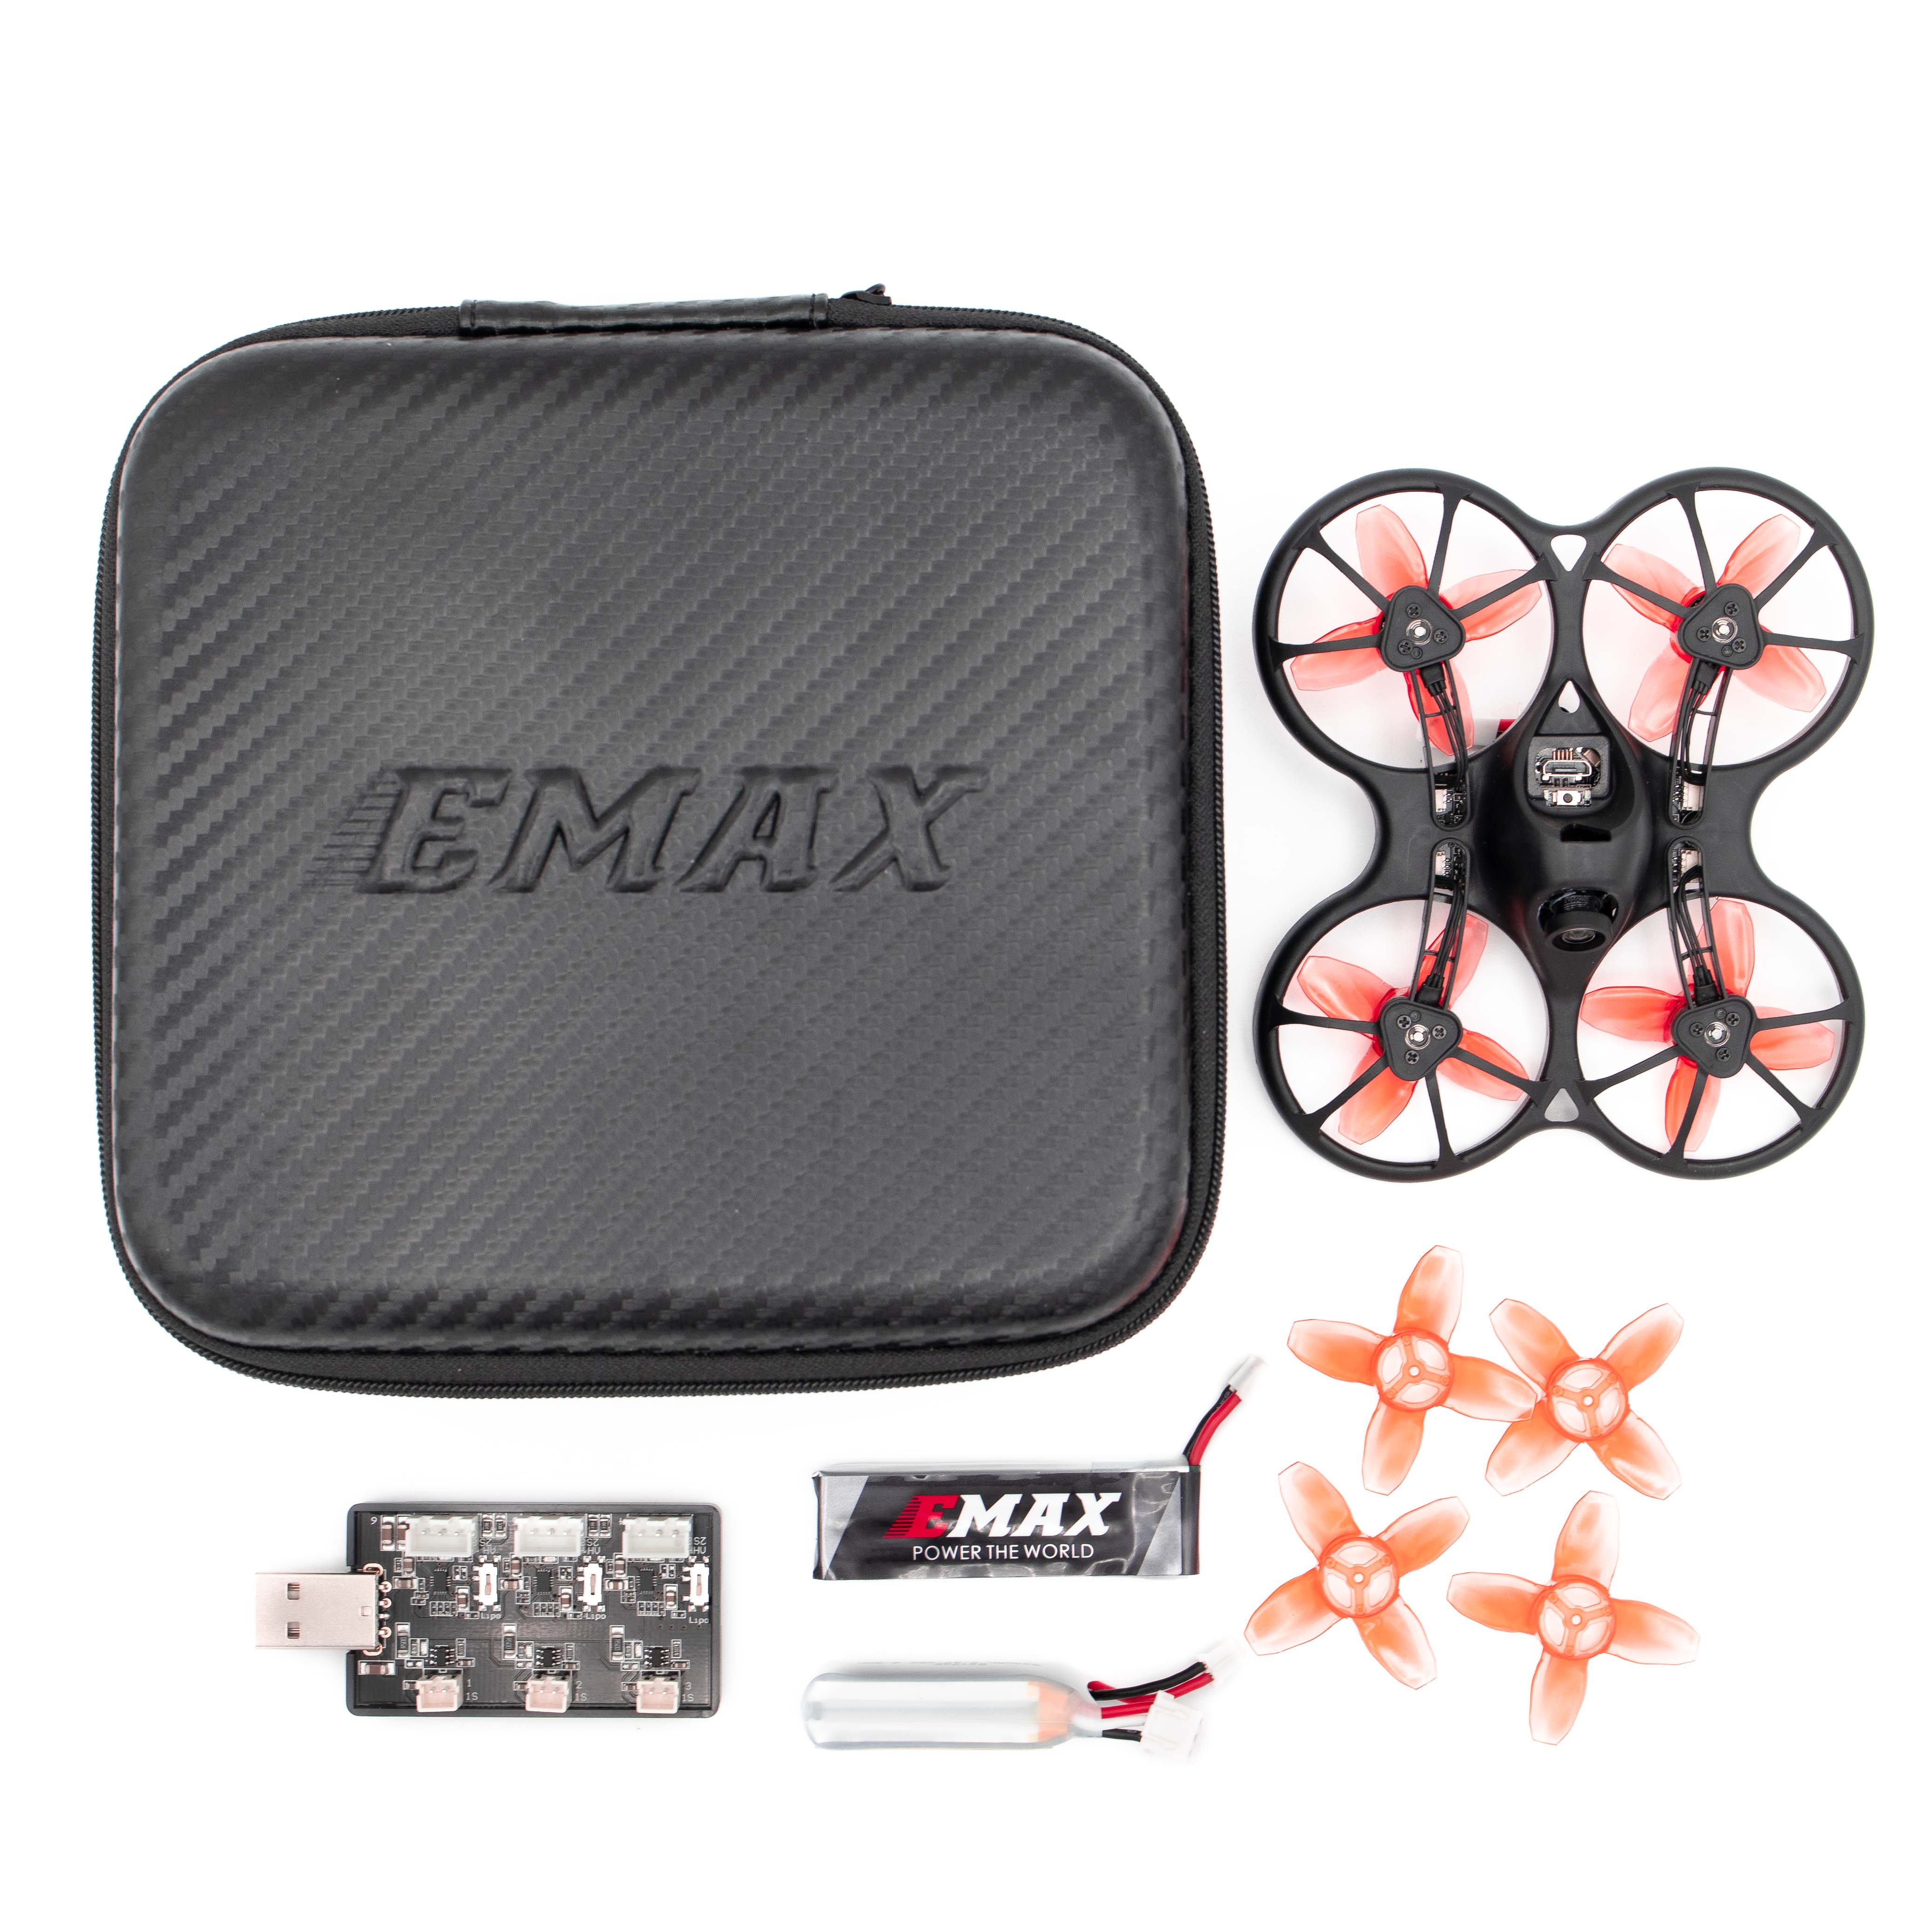 Free Shipping Emax 2S Tinyhawk S Mini FPV Racing Drone With Camera 0802 15500KV Brushless Motor